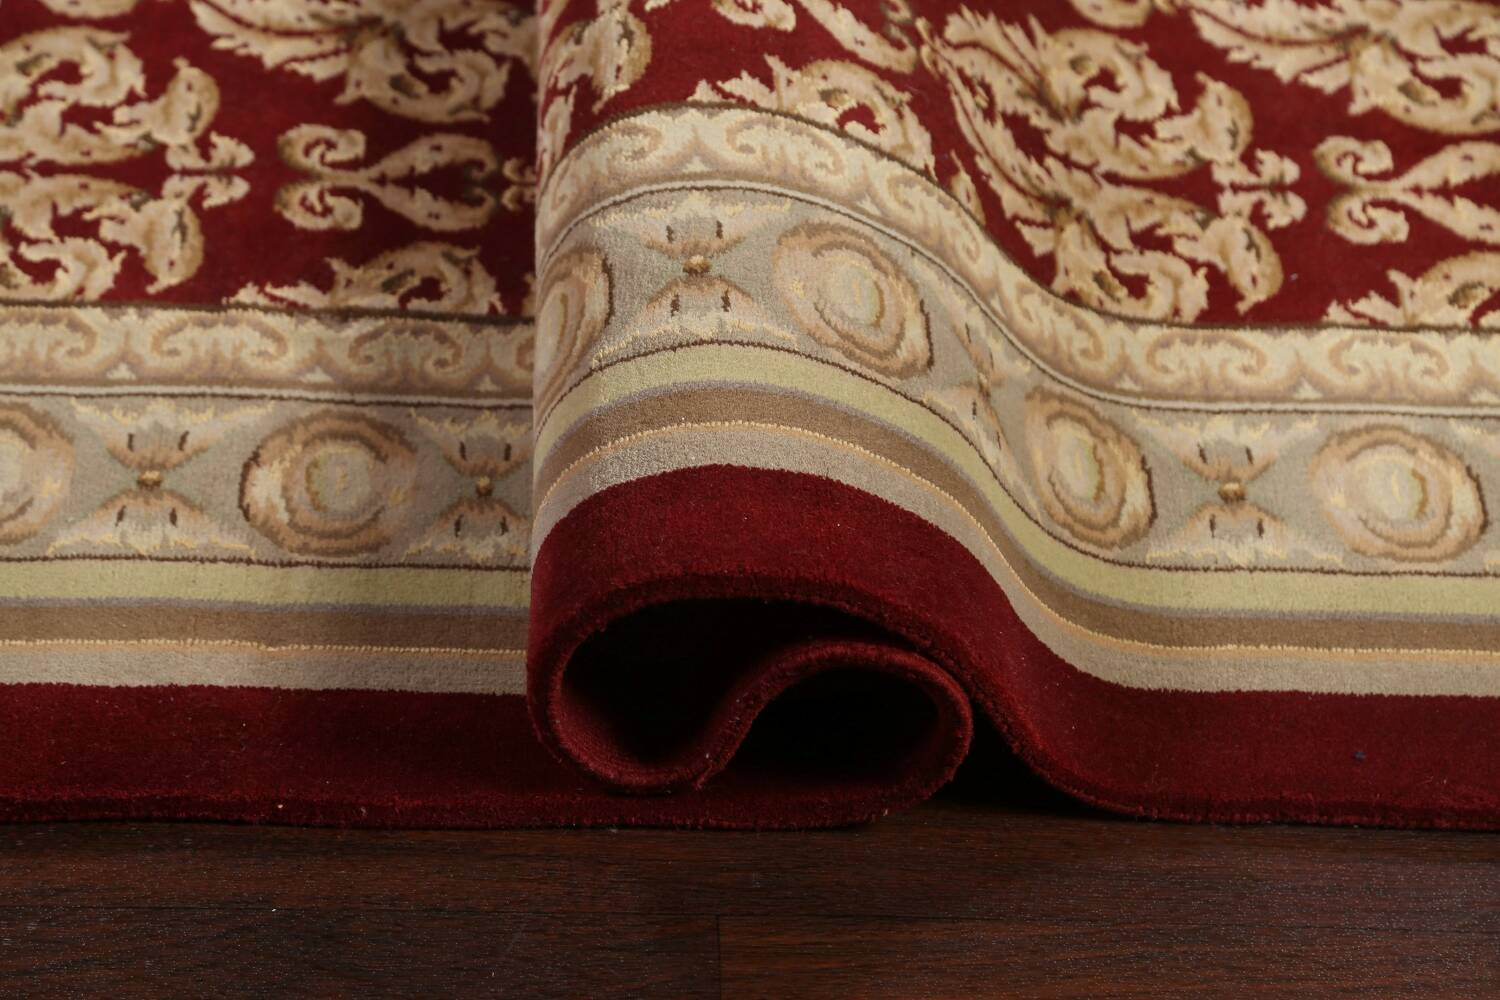 All-Over Red Aubusson Handmade Rug 10x14 image 11